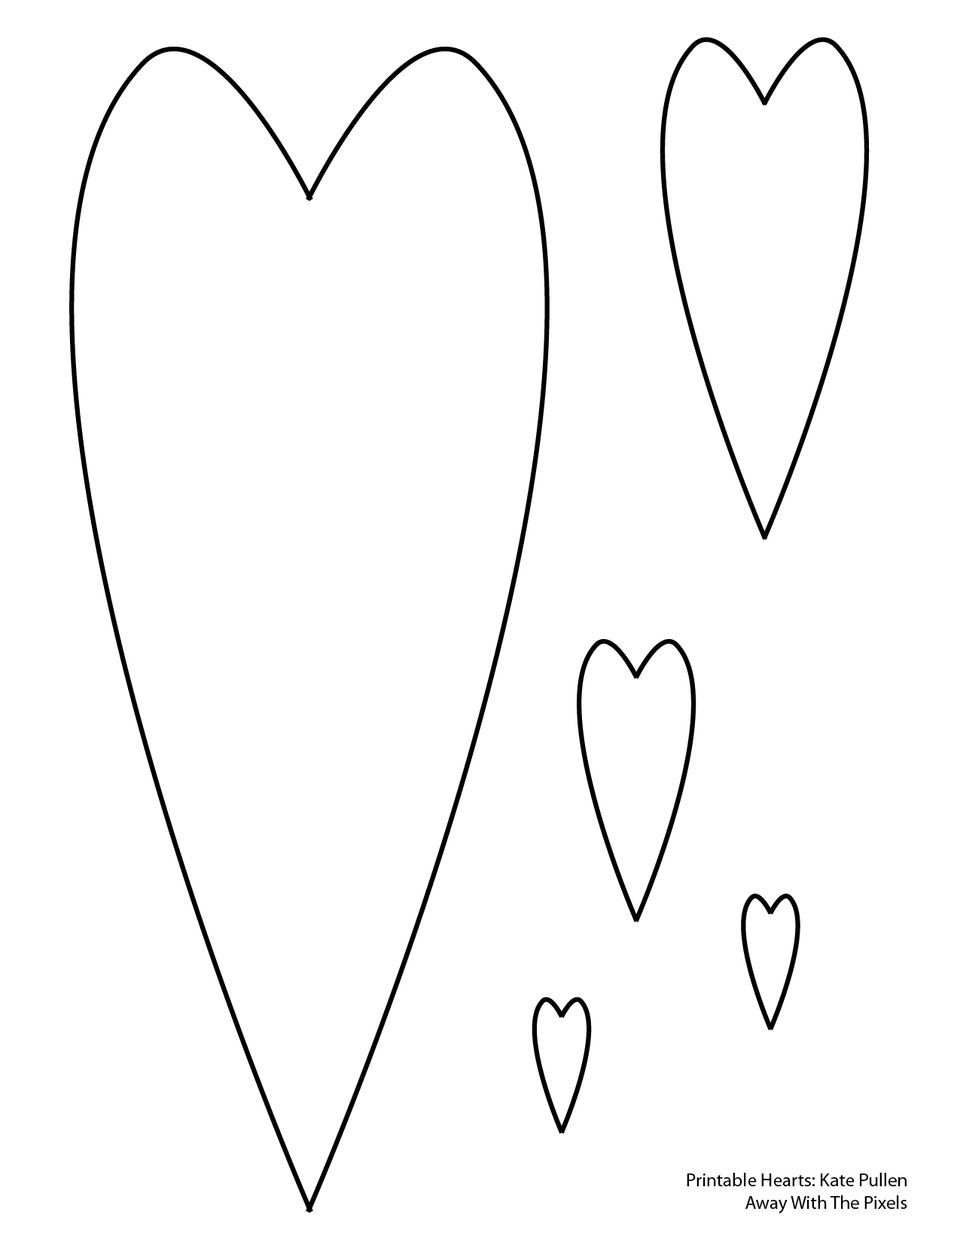 This is an image of Unforgettable Printable Heart Pattern